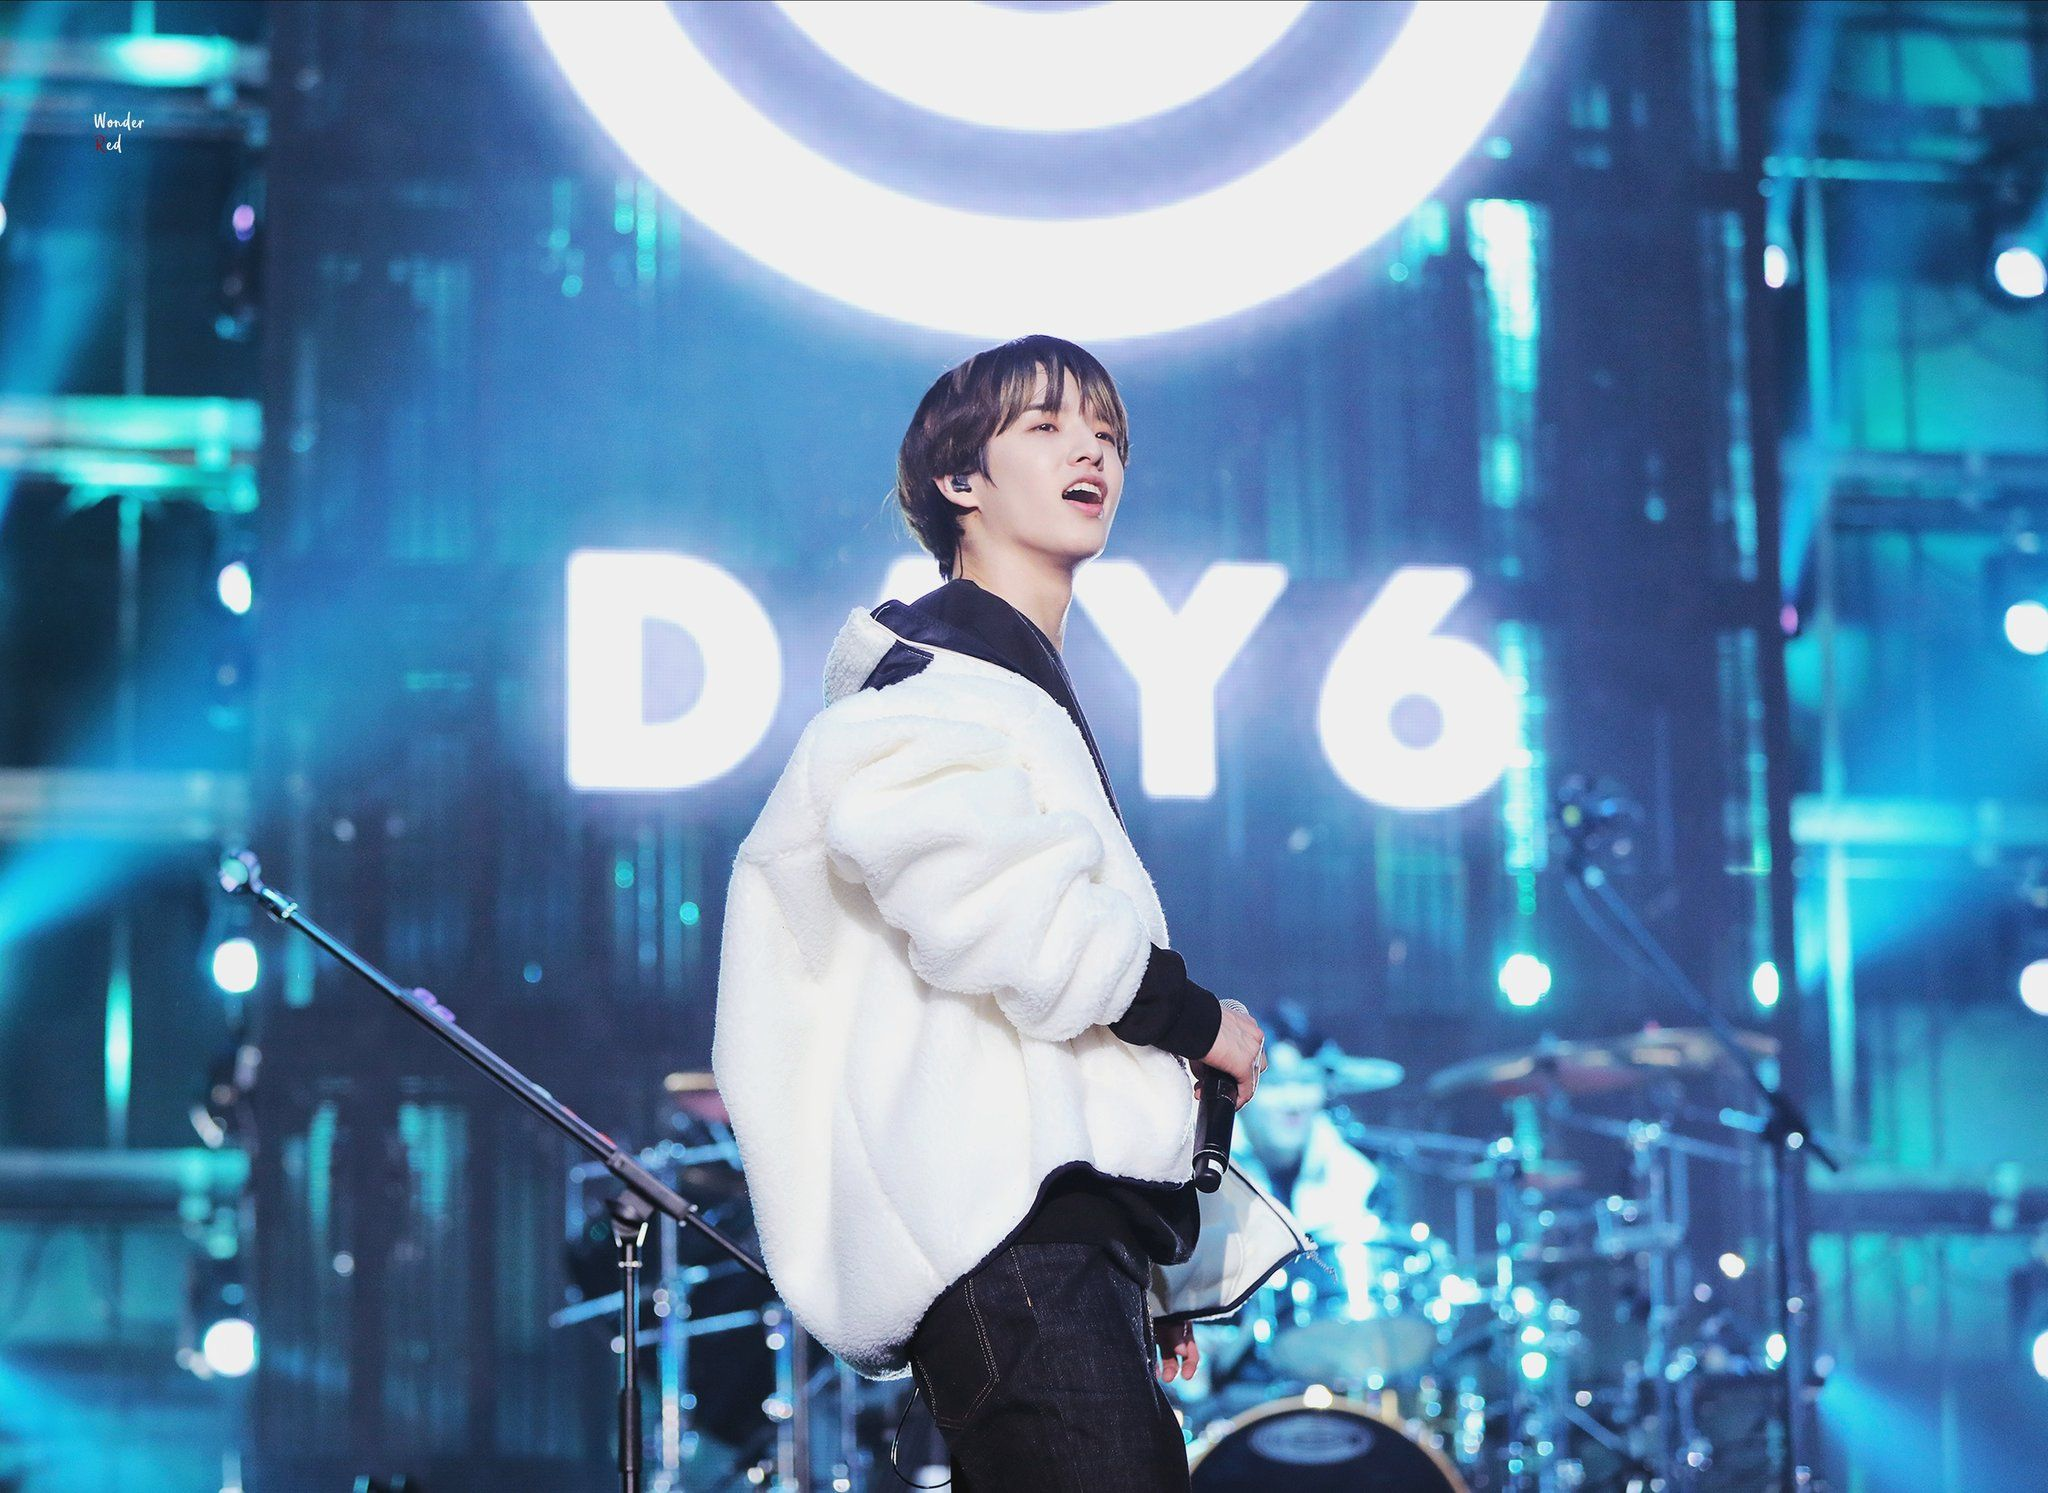 𝙒𝙤𝙣𝙙𝙚𝙧 𝙍𝙚𝙙 on in 2020 (With images) Day6, Jae day6, Concert